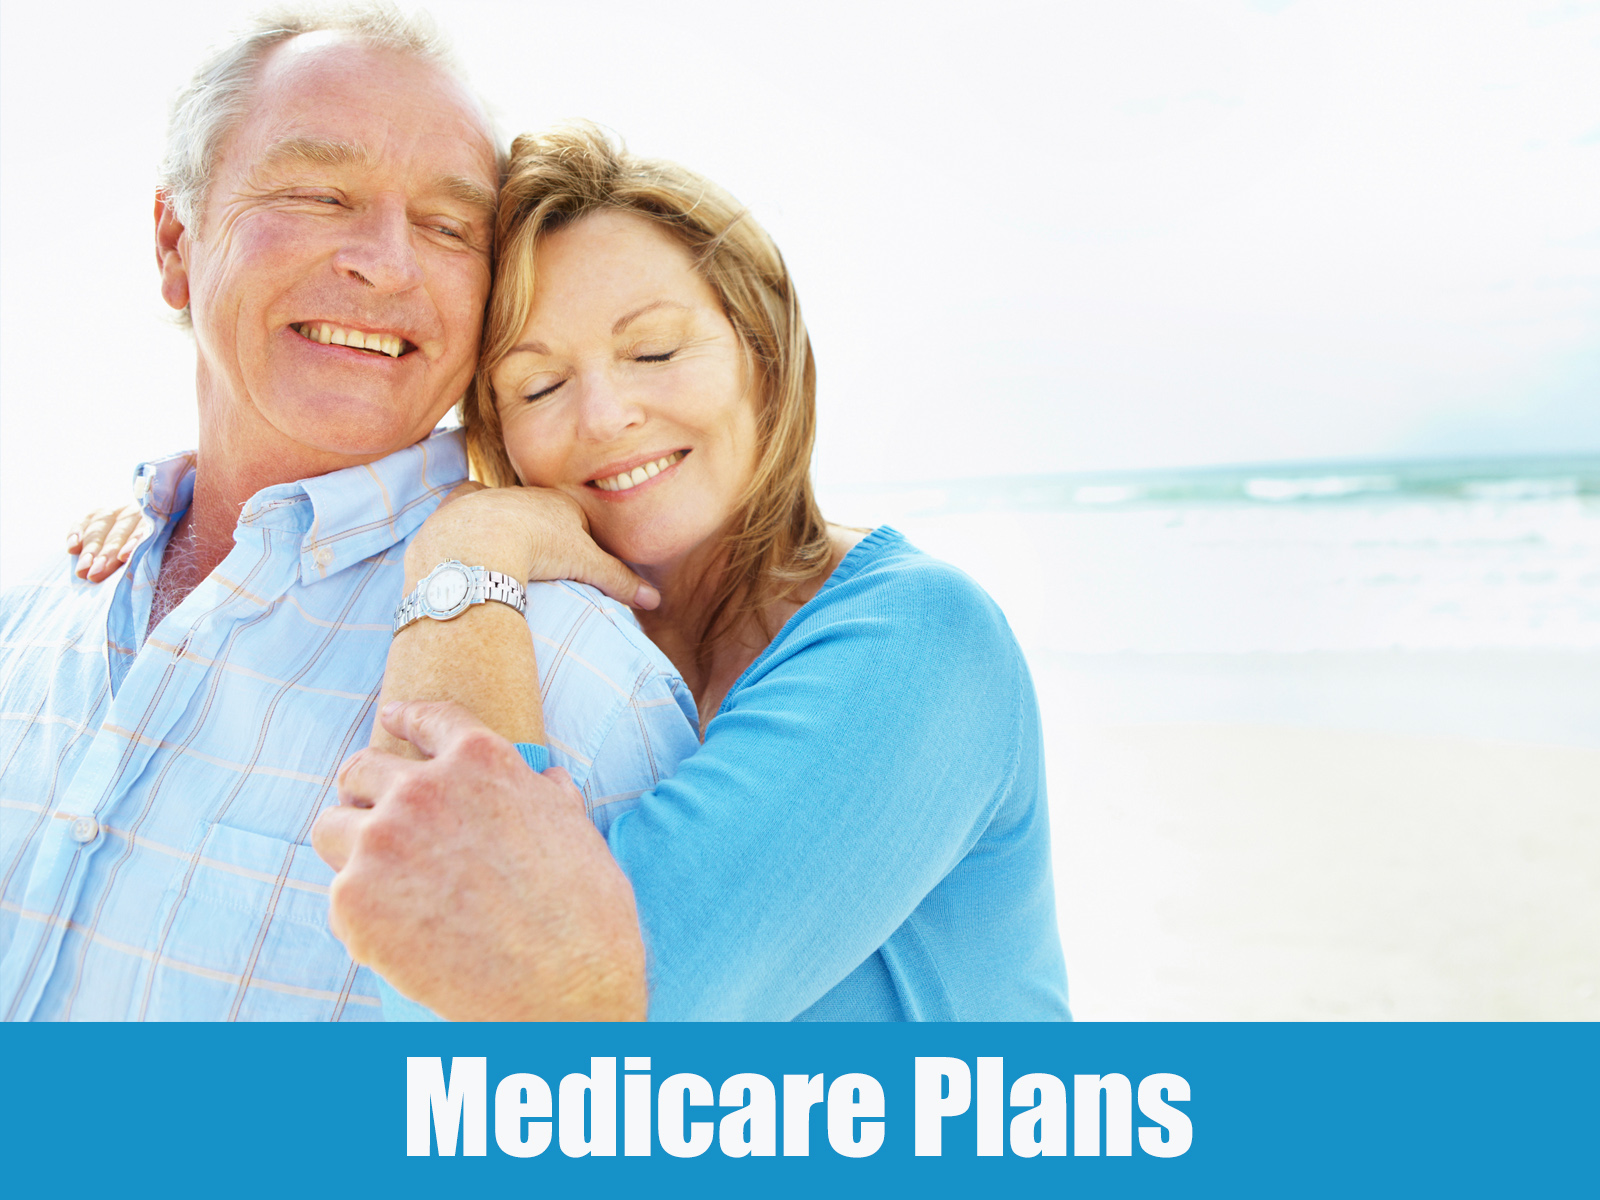 Medicare Plan image showing a senior couple embracing on the beach